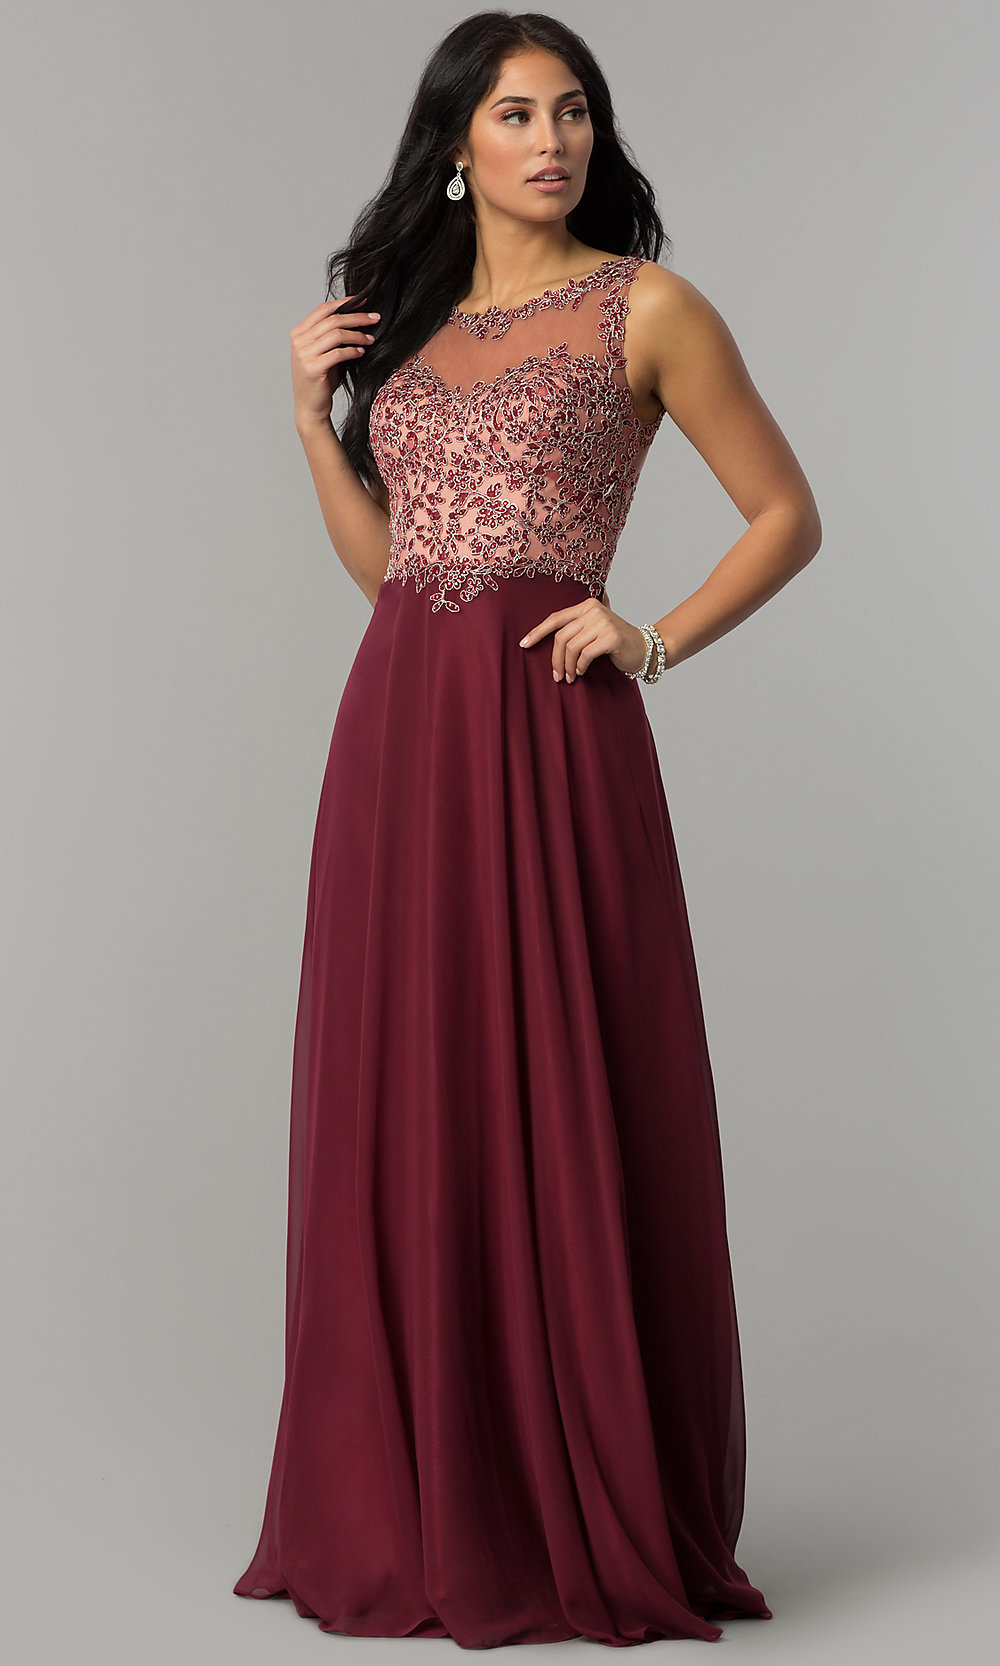 Bateau-Neck Prom Dress with a Sheer Beaded Bodice